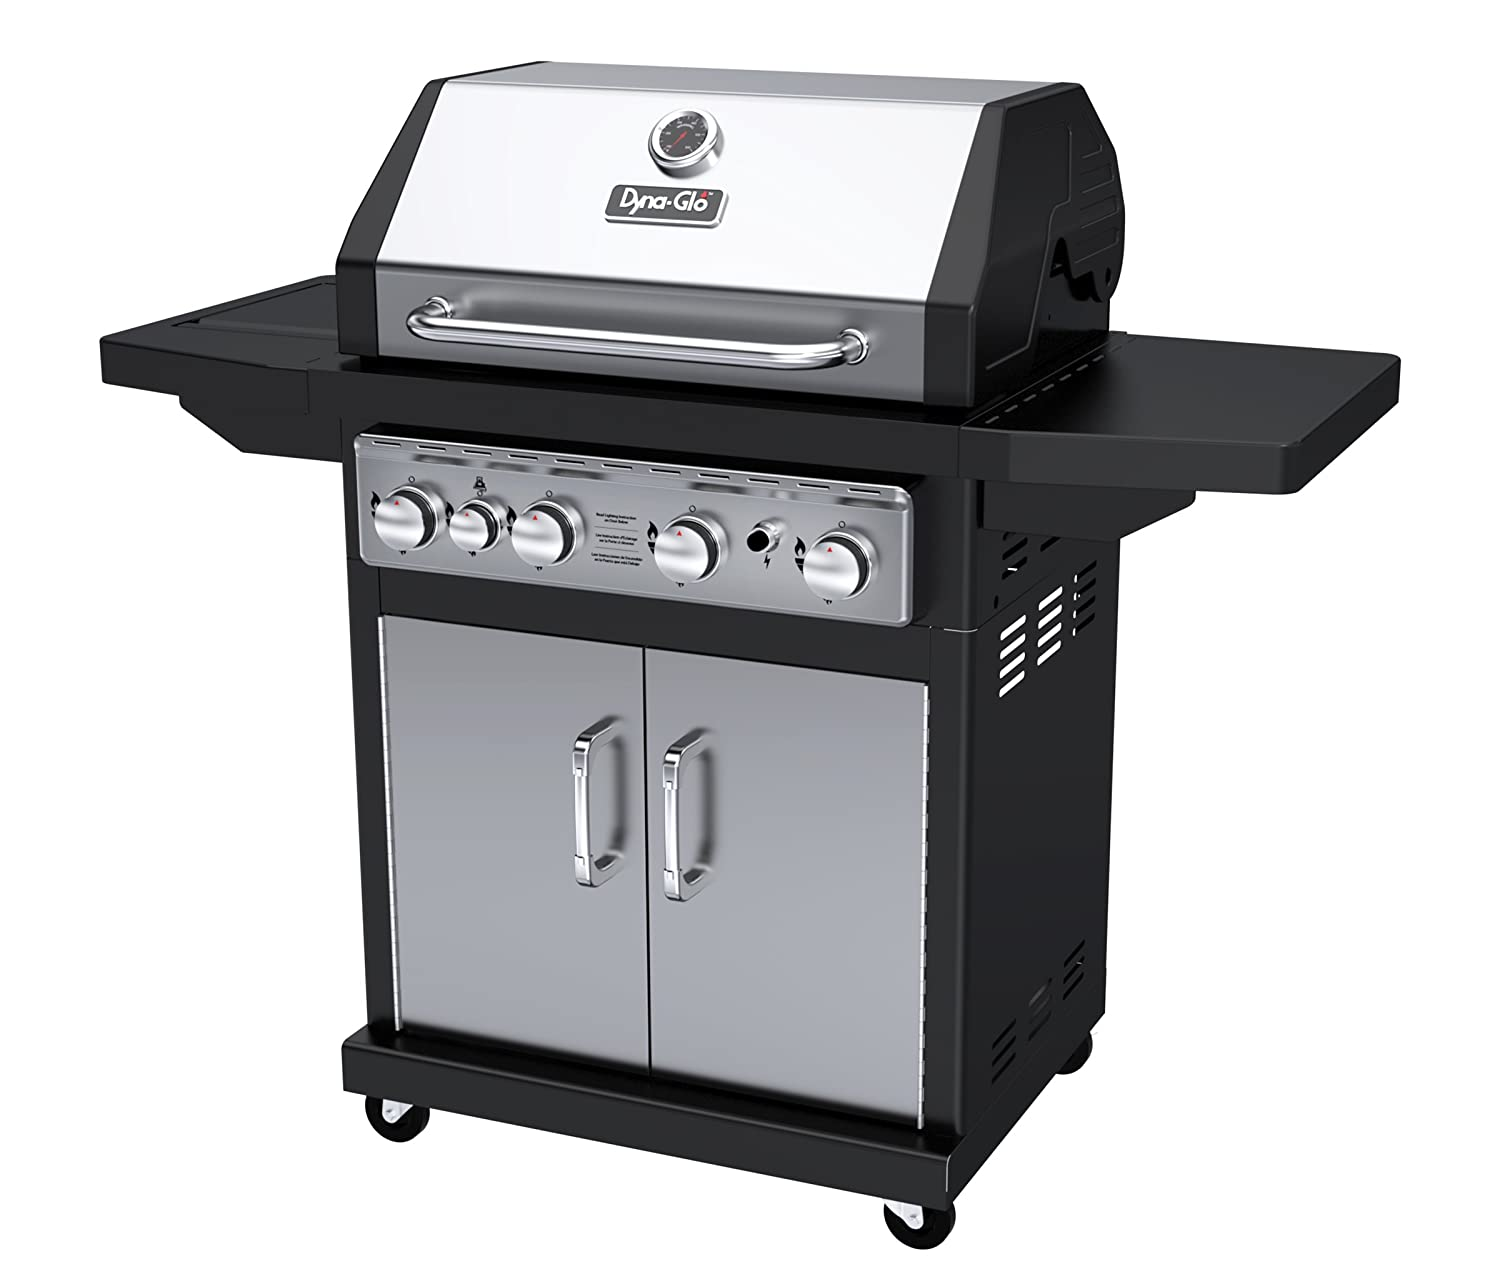 Dyna-Glo Black & Stainless Premium Grills, 4 Burner, Liquid Propane Gas